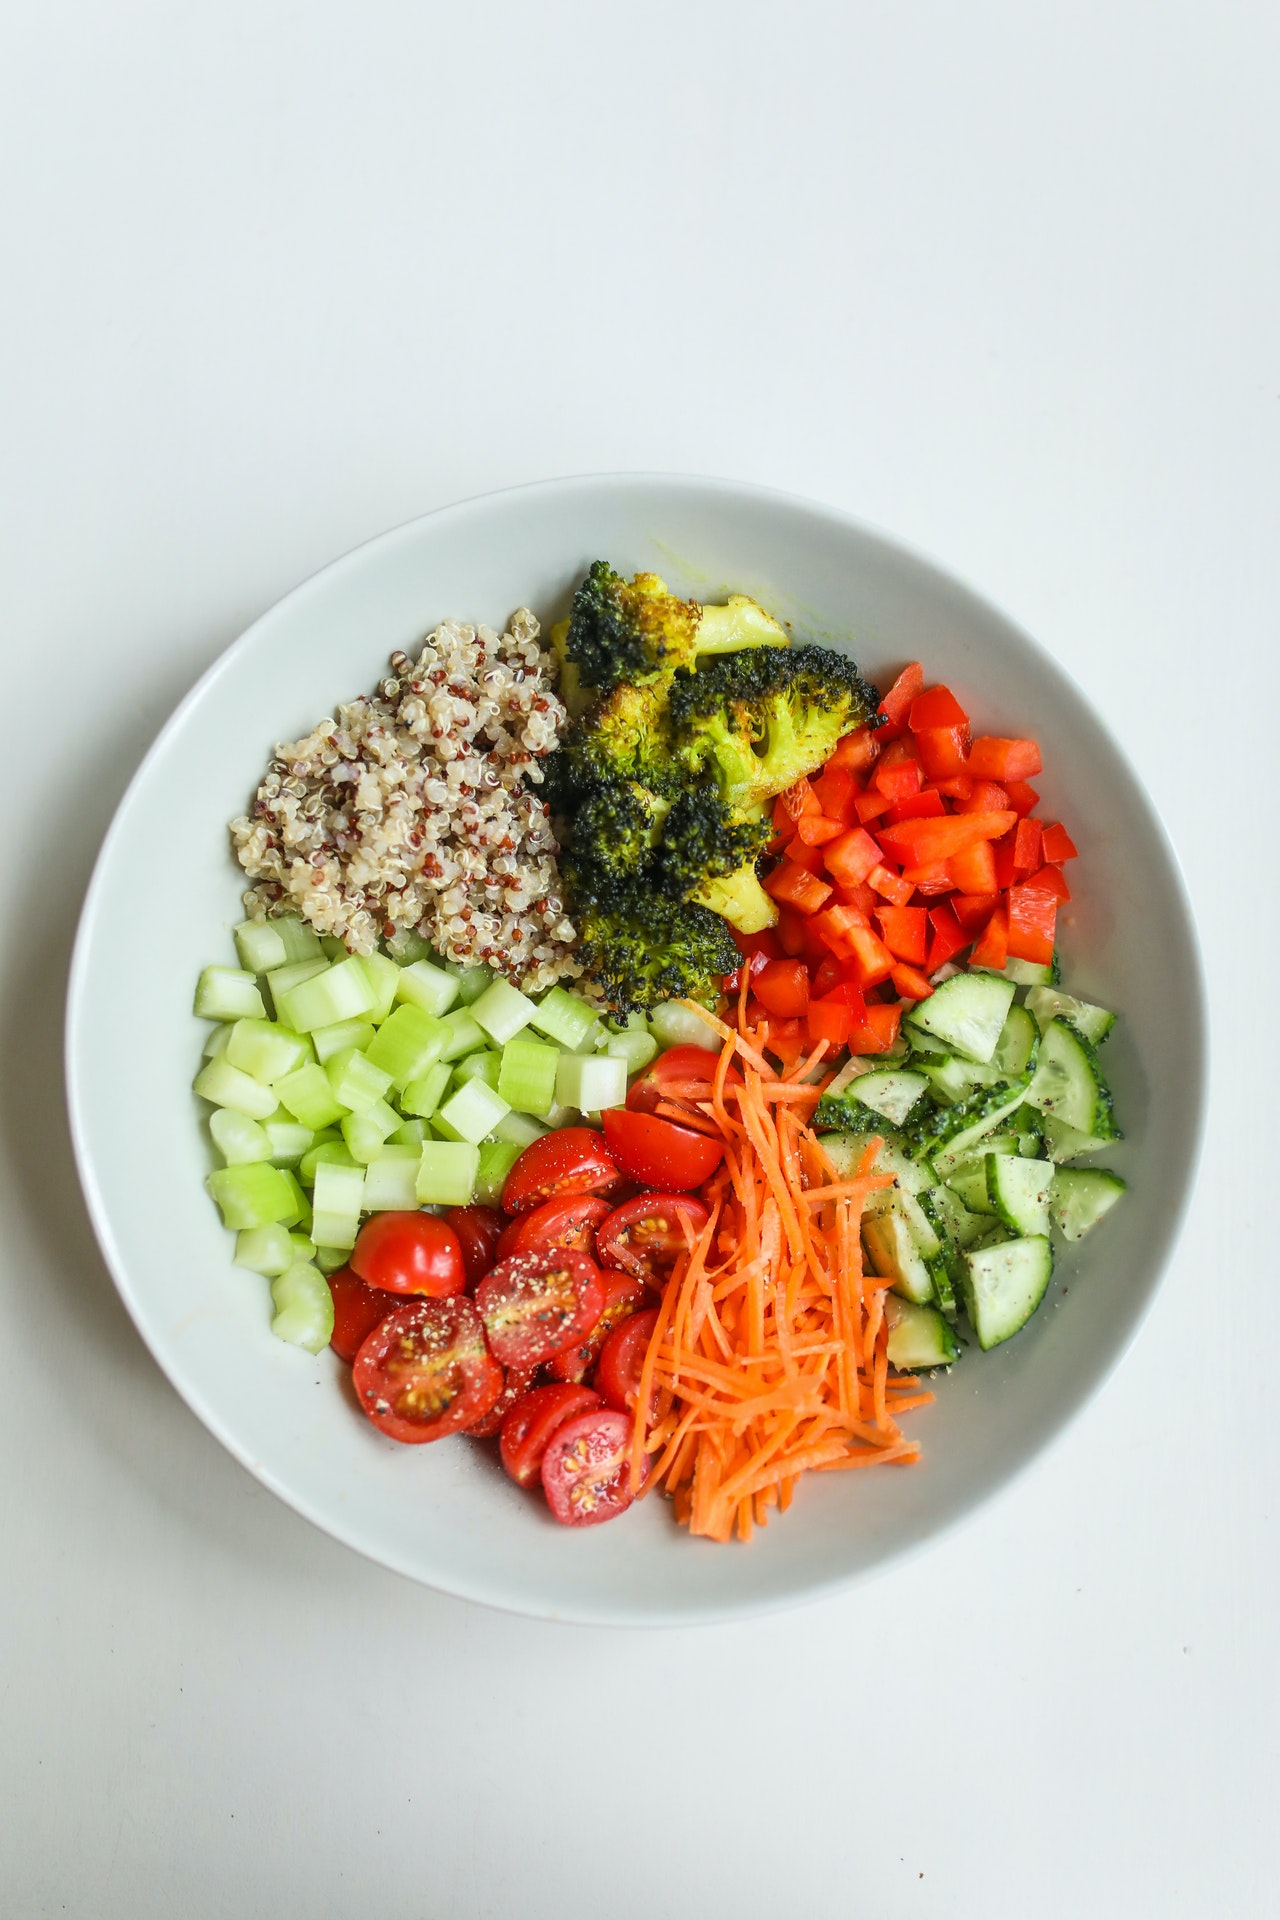 5 Easy Ways to Guarantee You Eat Enough Vegetables